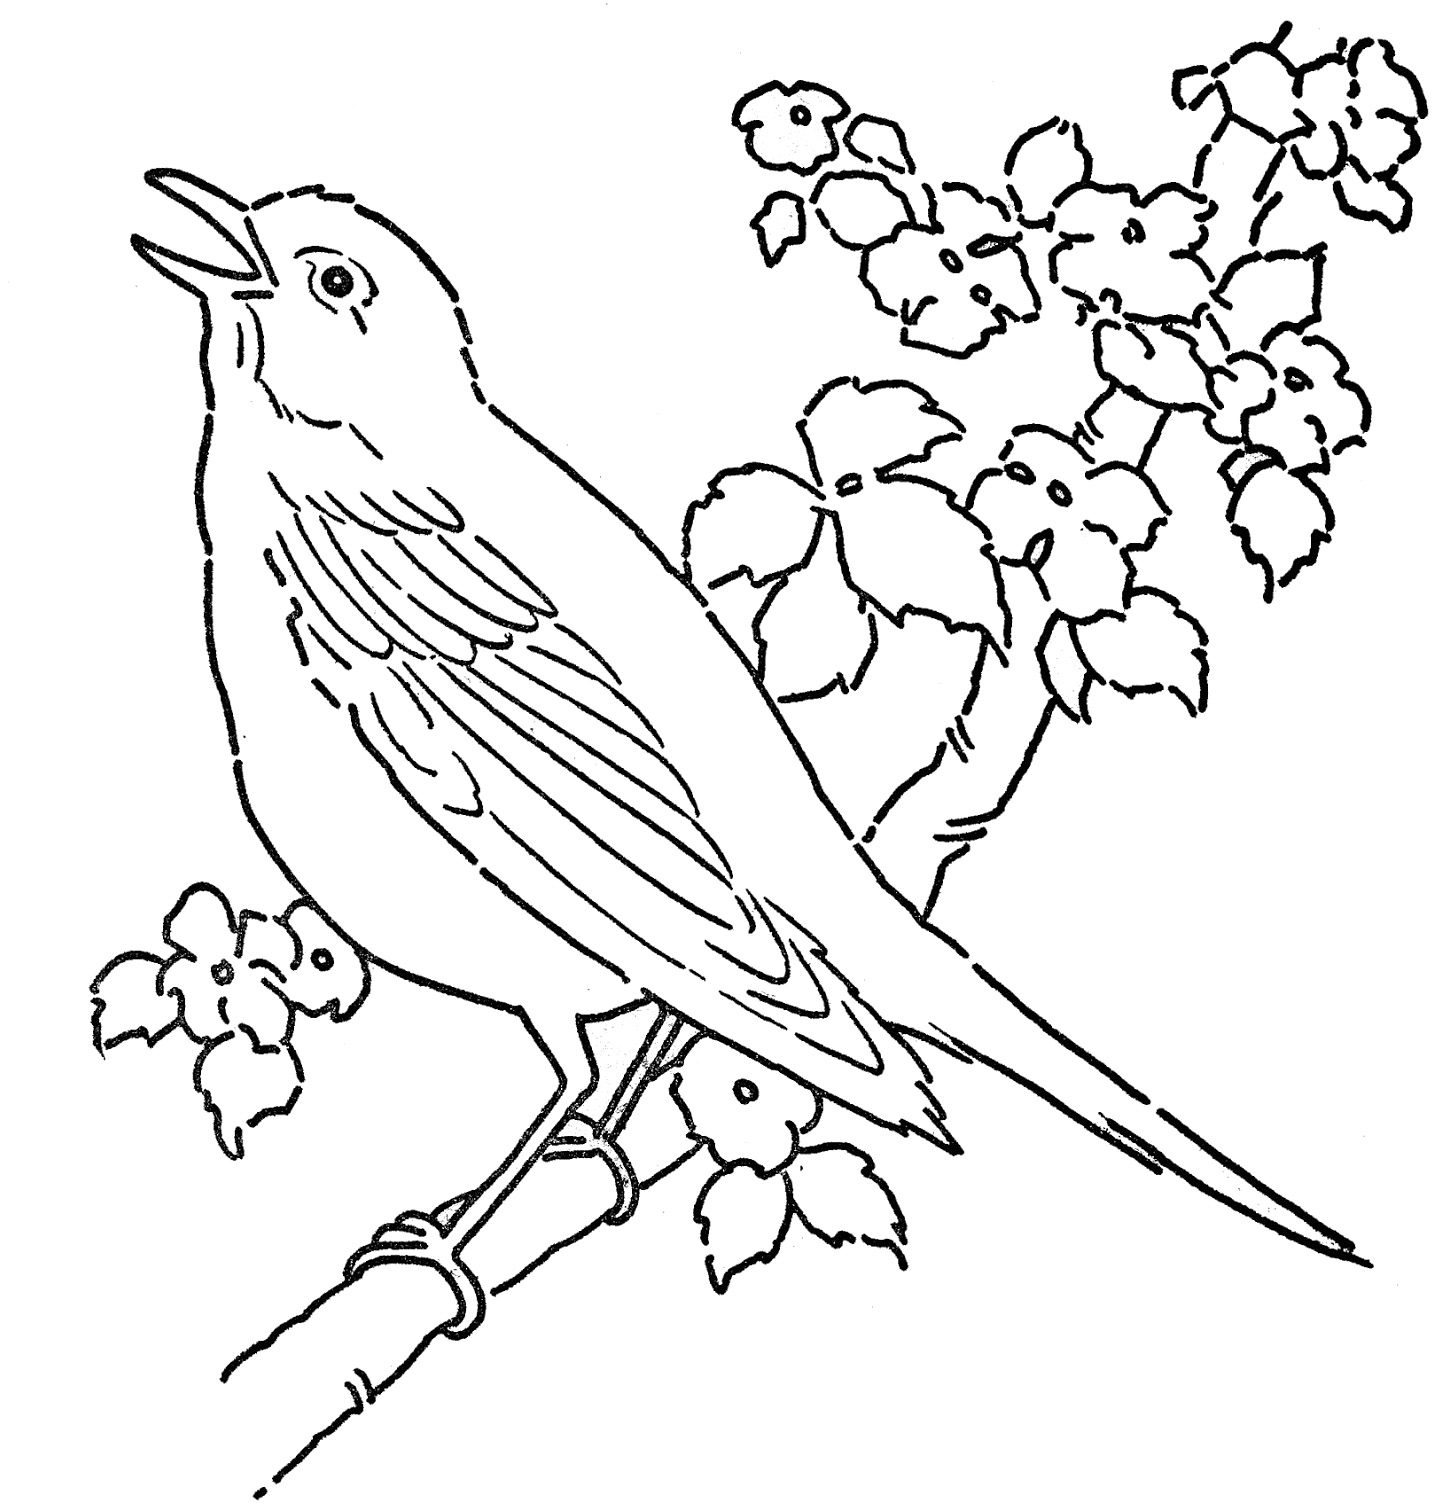 printable bird coloring pages bird coloring pages to download and print for free bird coloring printable pages